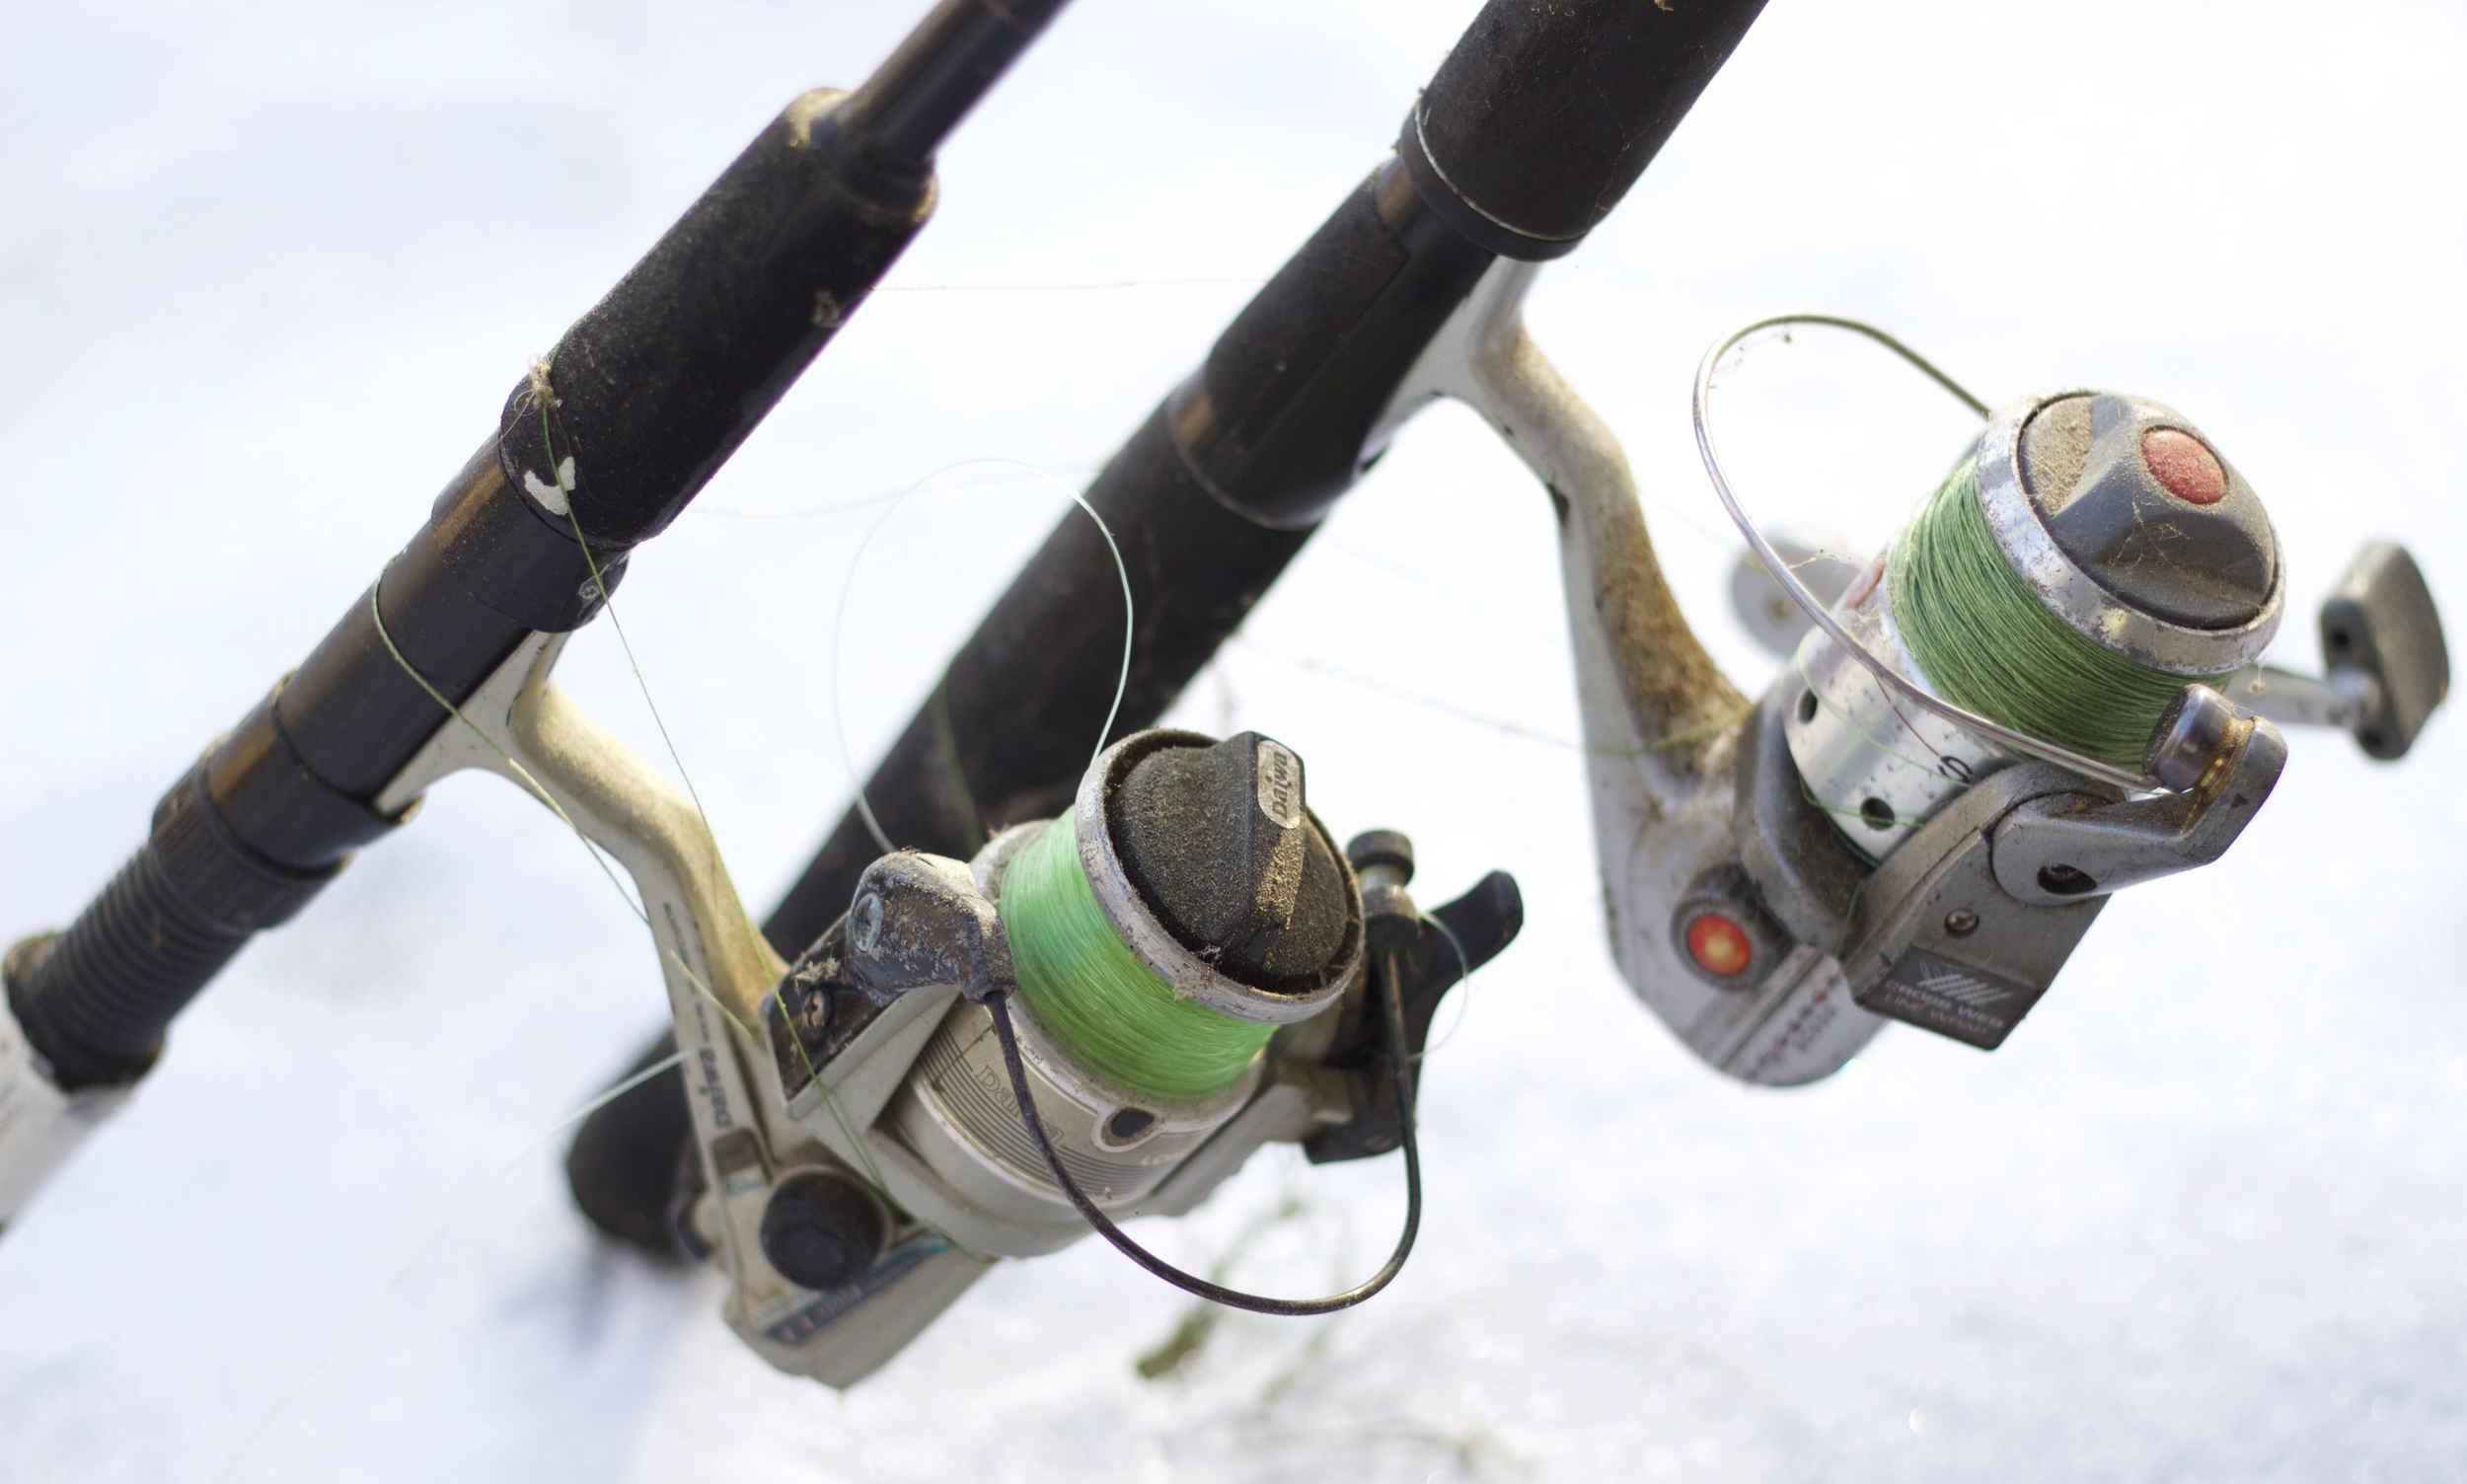 Time to dust off the ol' fishing rods...